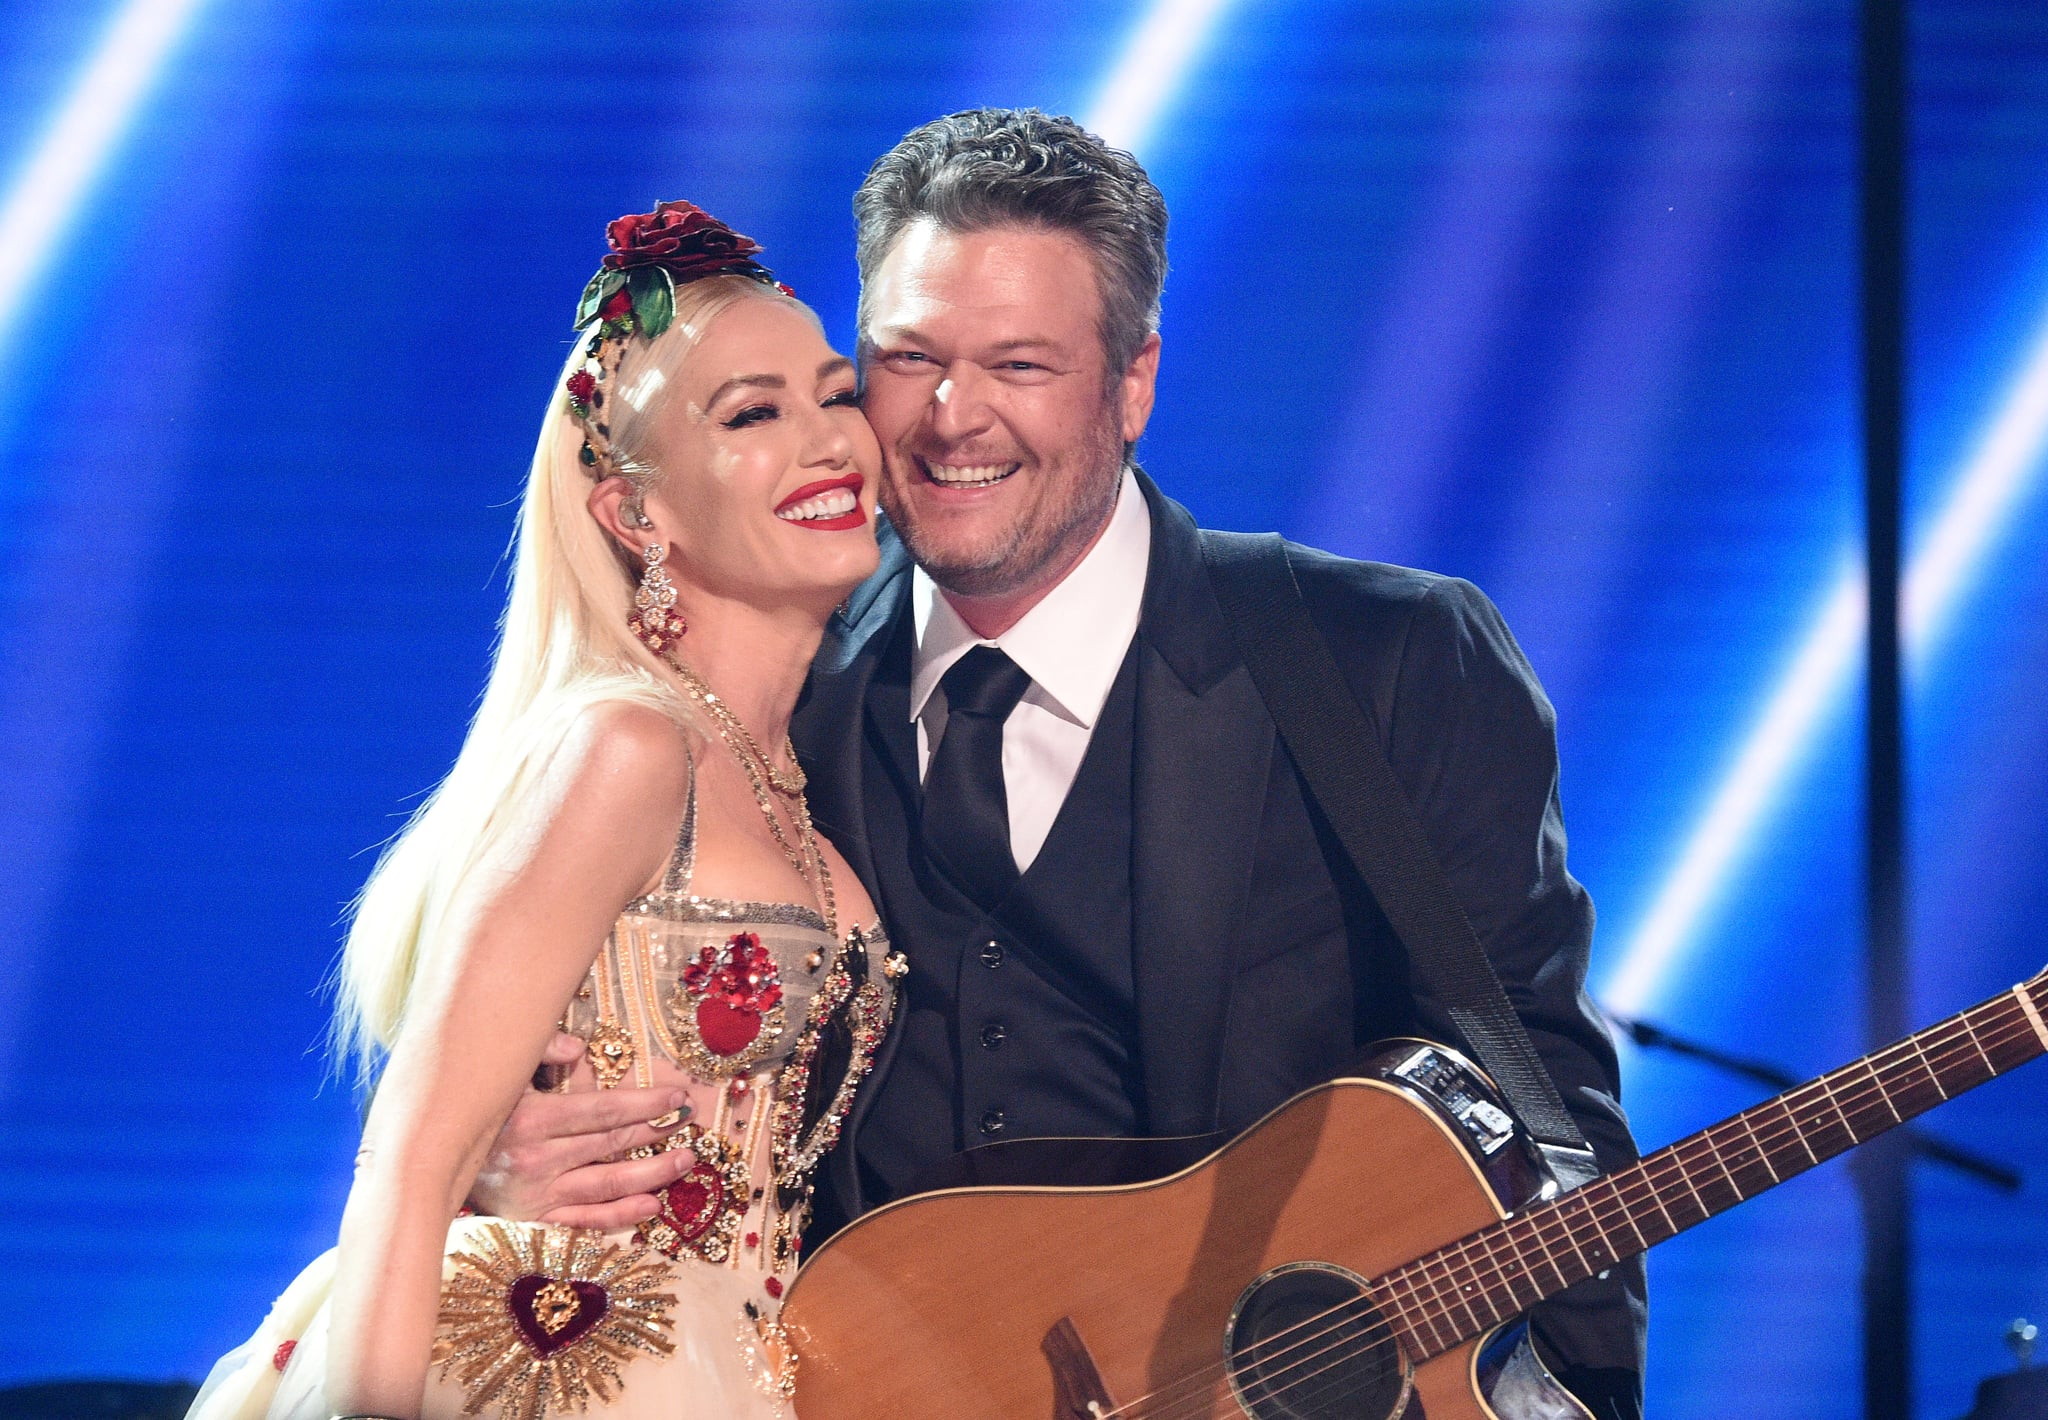 LOS ANGELES, CALIFORNIA - JANUARY 26: Gwen Stefani and Blake Shelton pose onstage during the 62nd Annual GRAMMY Awards at STAPLES Centre on January 26, 2020 in Los Angeles, California. (Photo by Kevin Mazur/Getty Images for The Recording Academy)